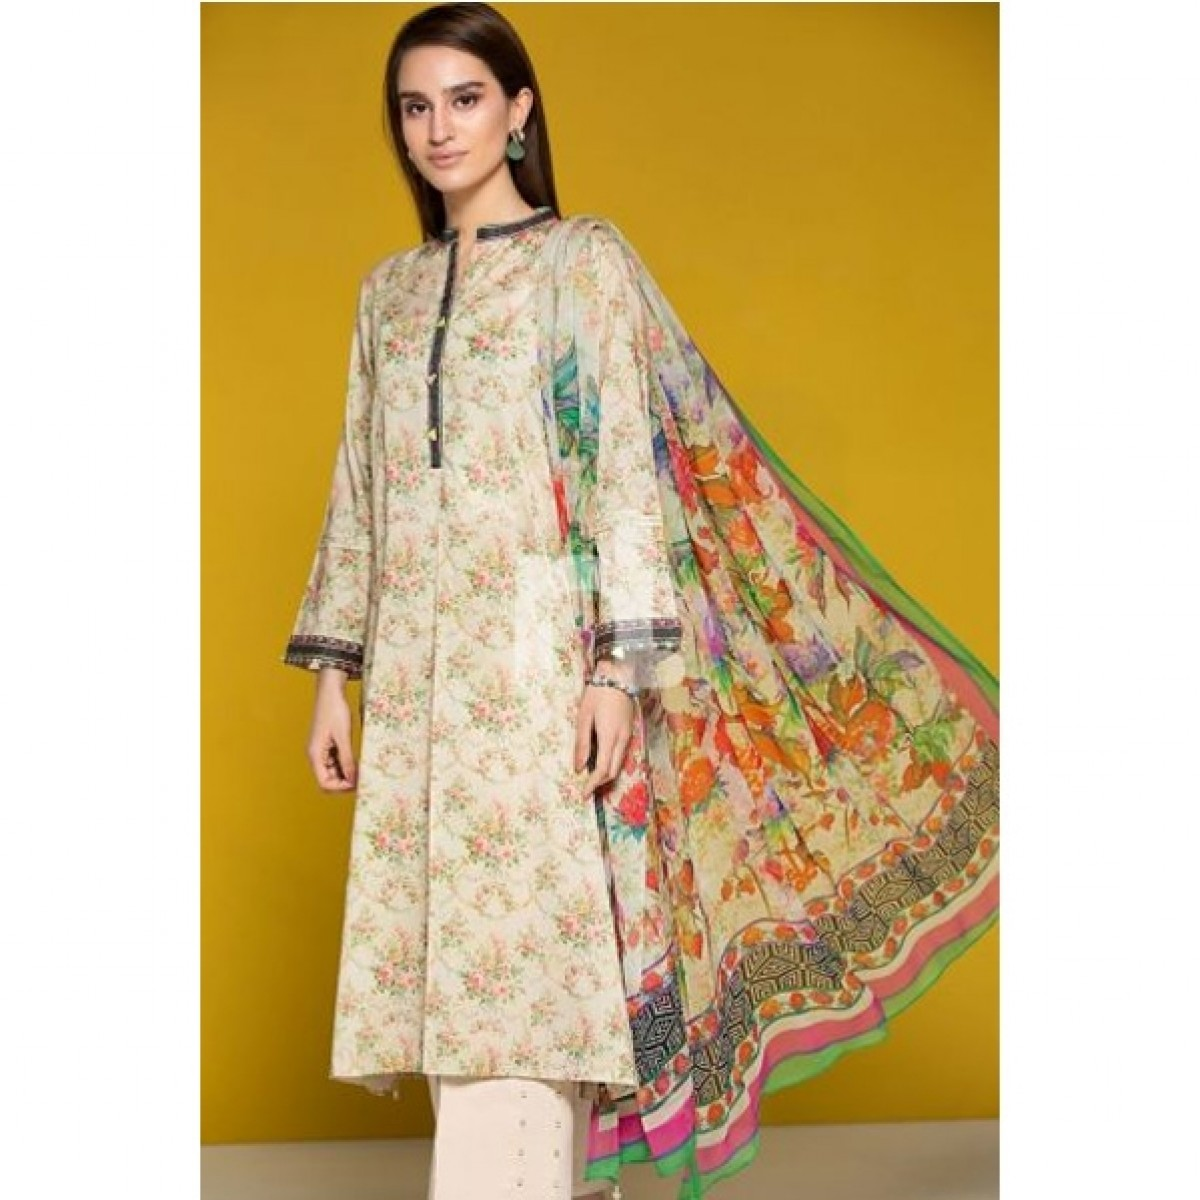 06b63ad8c0 Nishat Linen Digital Printed Lawn 2 Piece Price in Pakistan | Buy Nishat  Linen Embroidered Lawn 2 Piece Beige (41906072) | iShopping.pk